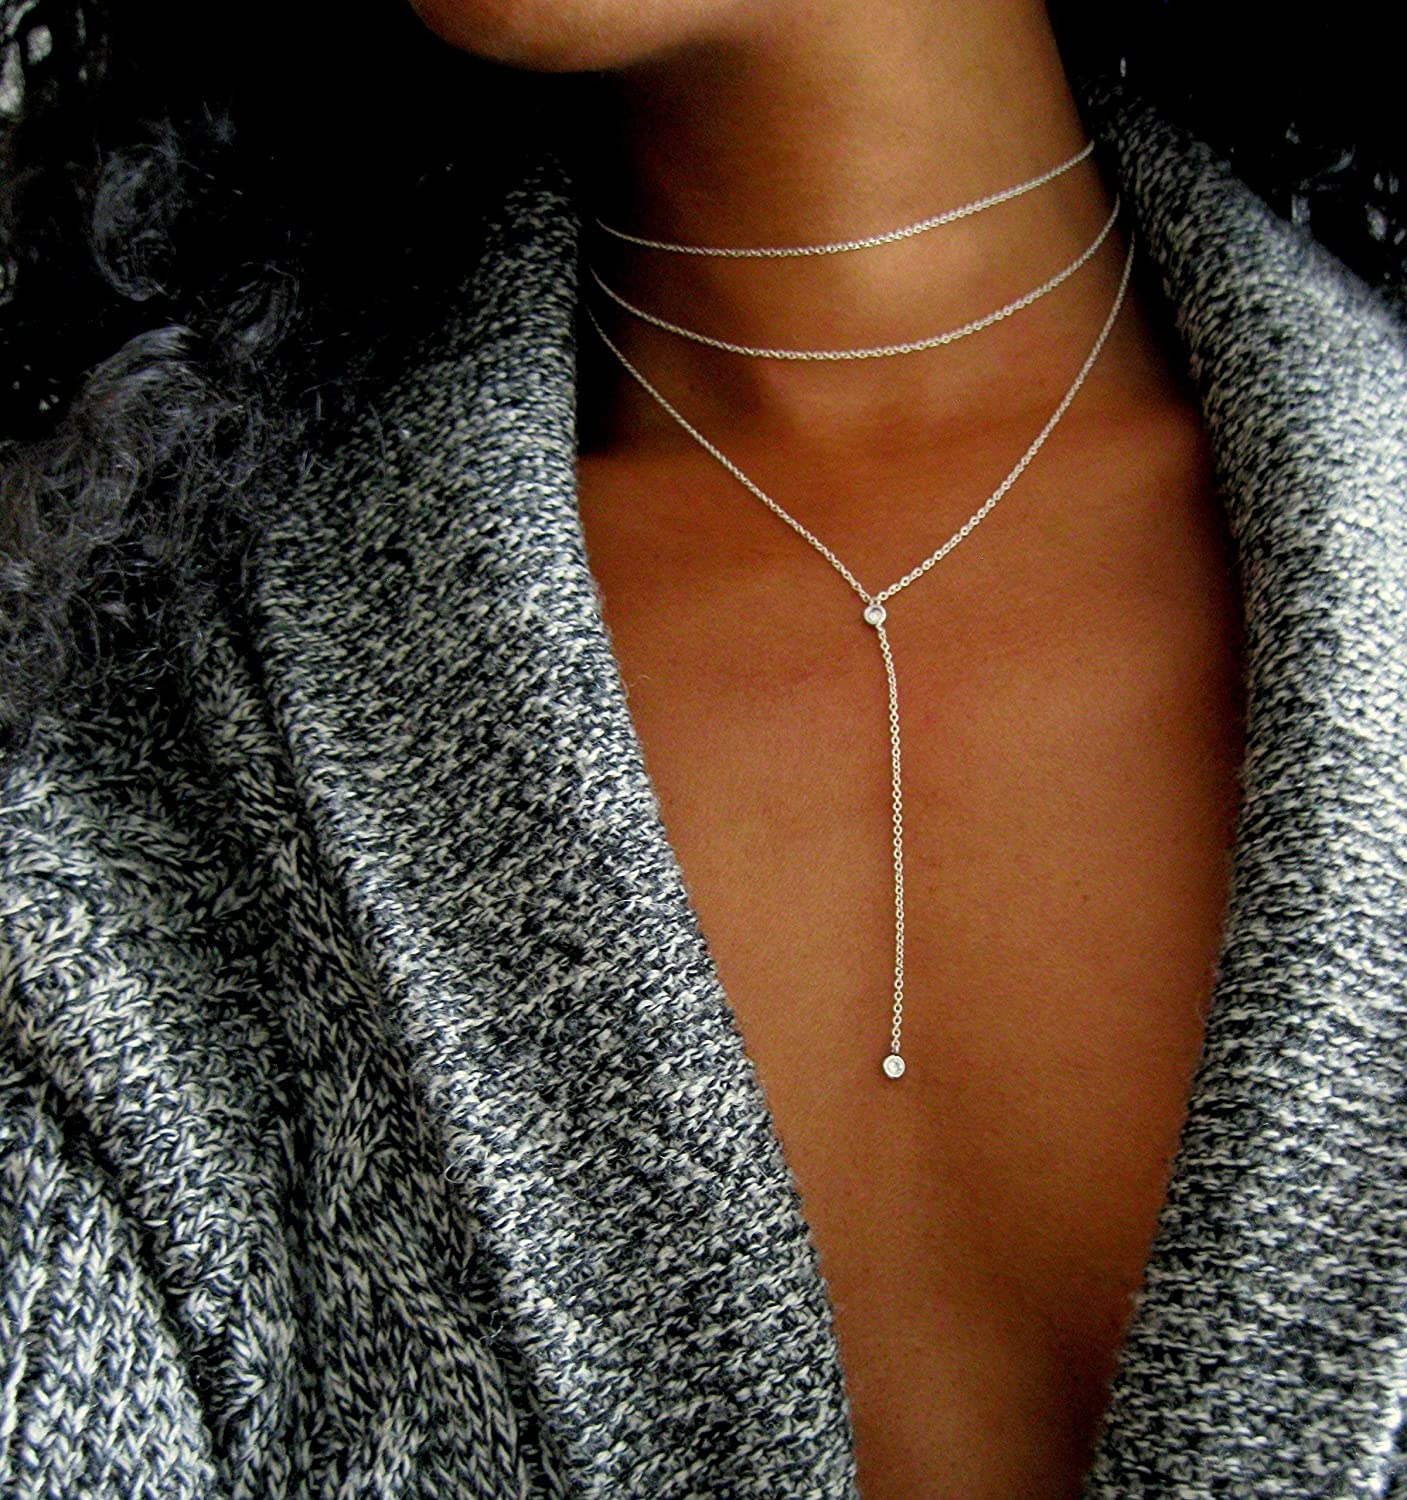 Sterling Silver Y Necklace Diamond Lariat Handmade layered choker, bridal jewelry for women in 16